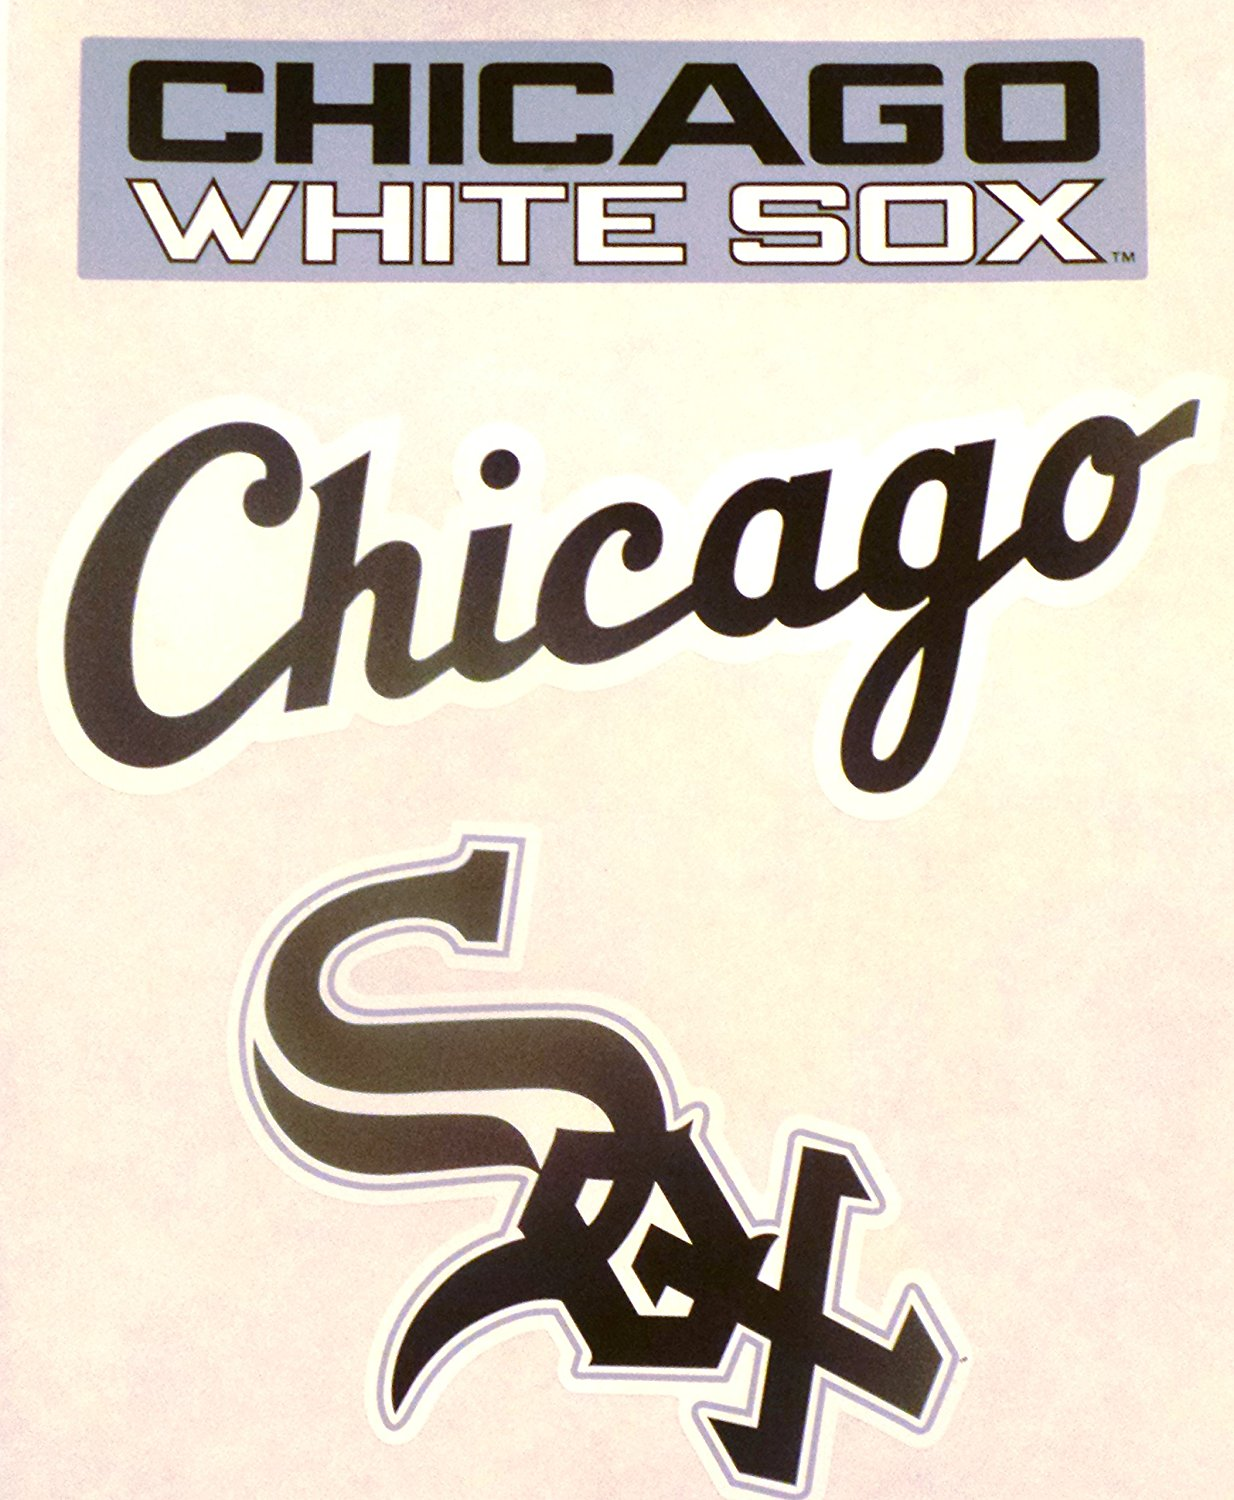 "Chicago White Sox FATHEAD Team Set of 3 White Sox Logo - Official MLB Vinyl Wall Graphics 11"" INCH SHEET"